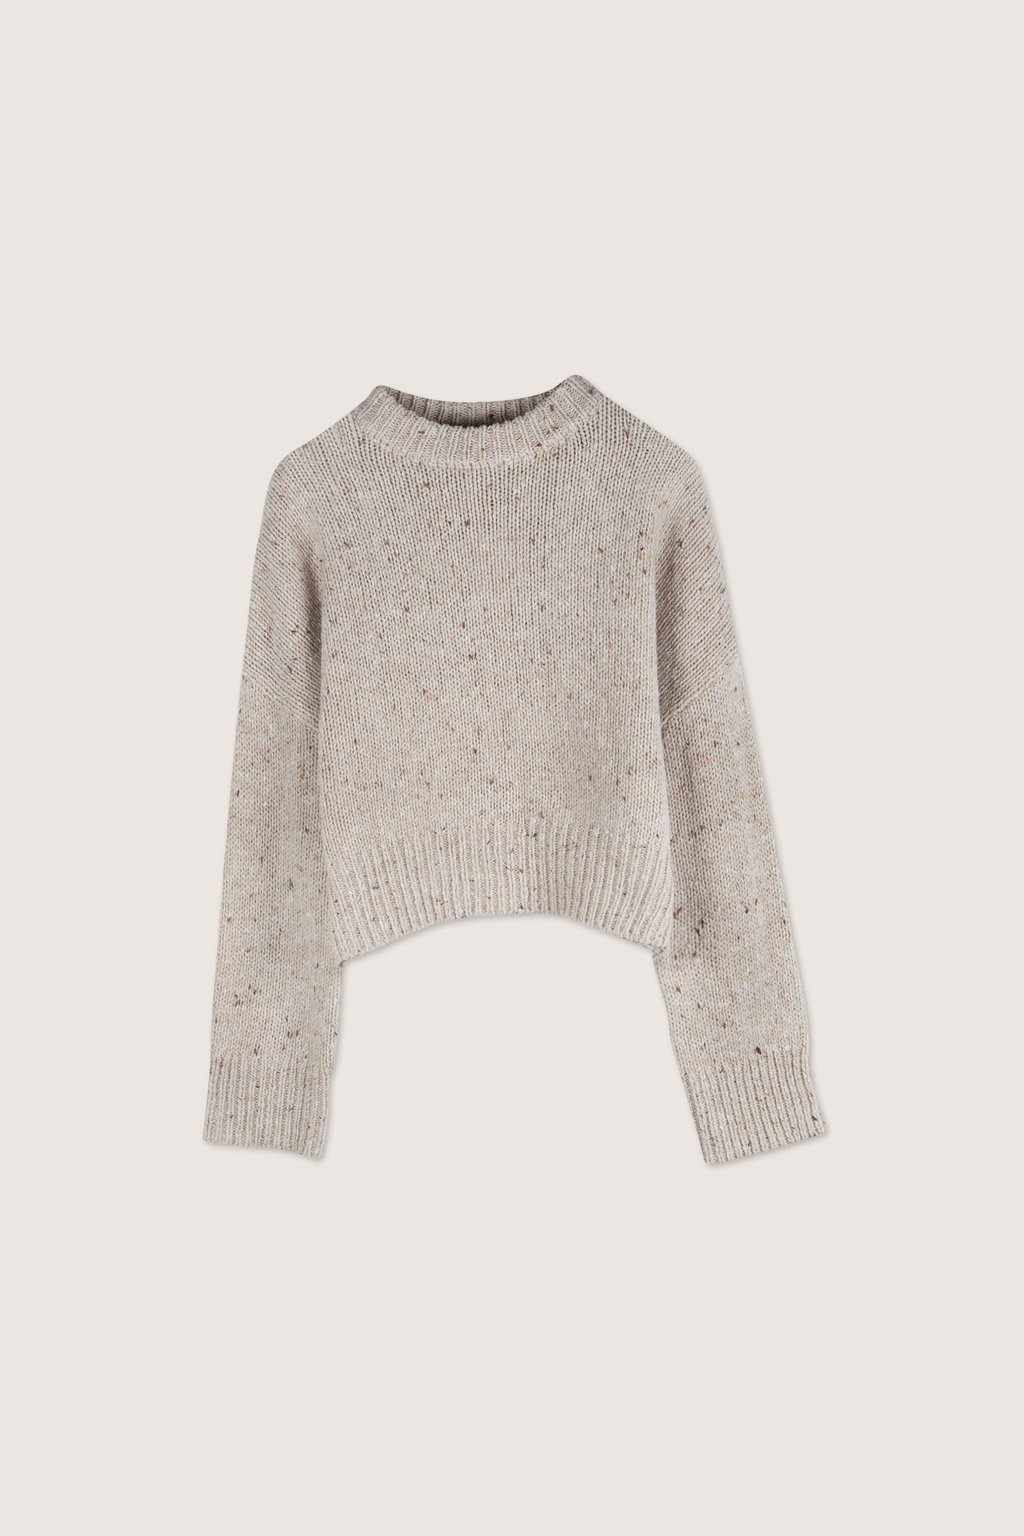 Sweater 1827 Oatmeal 9